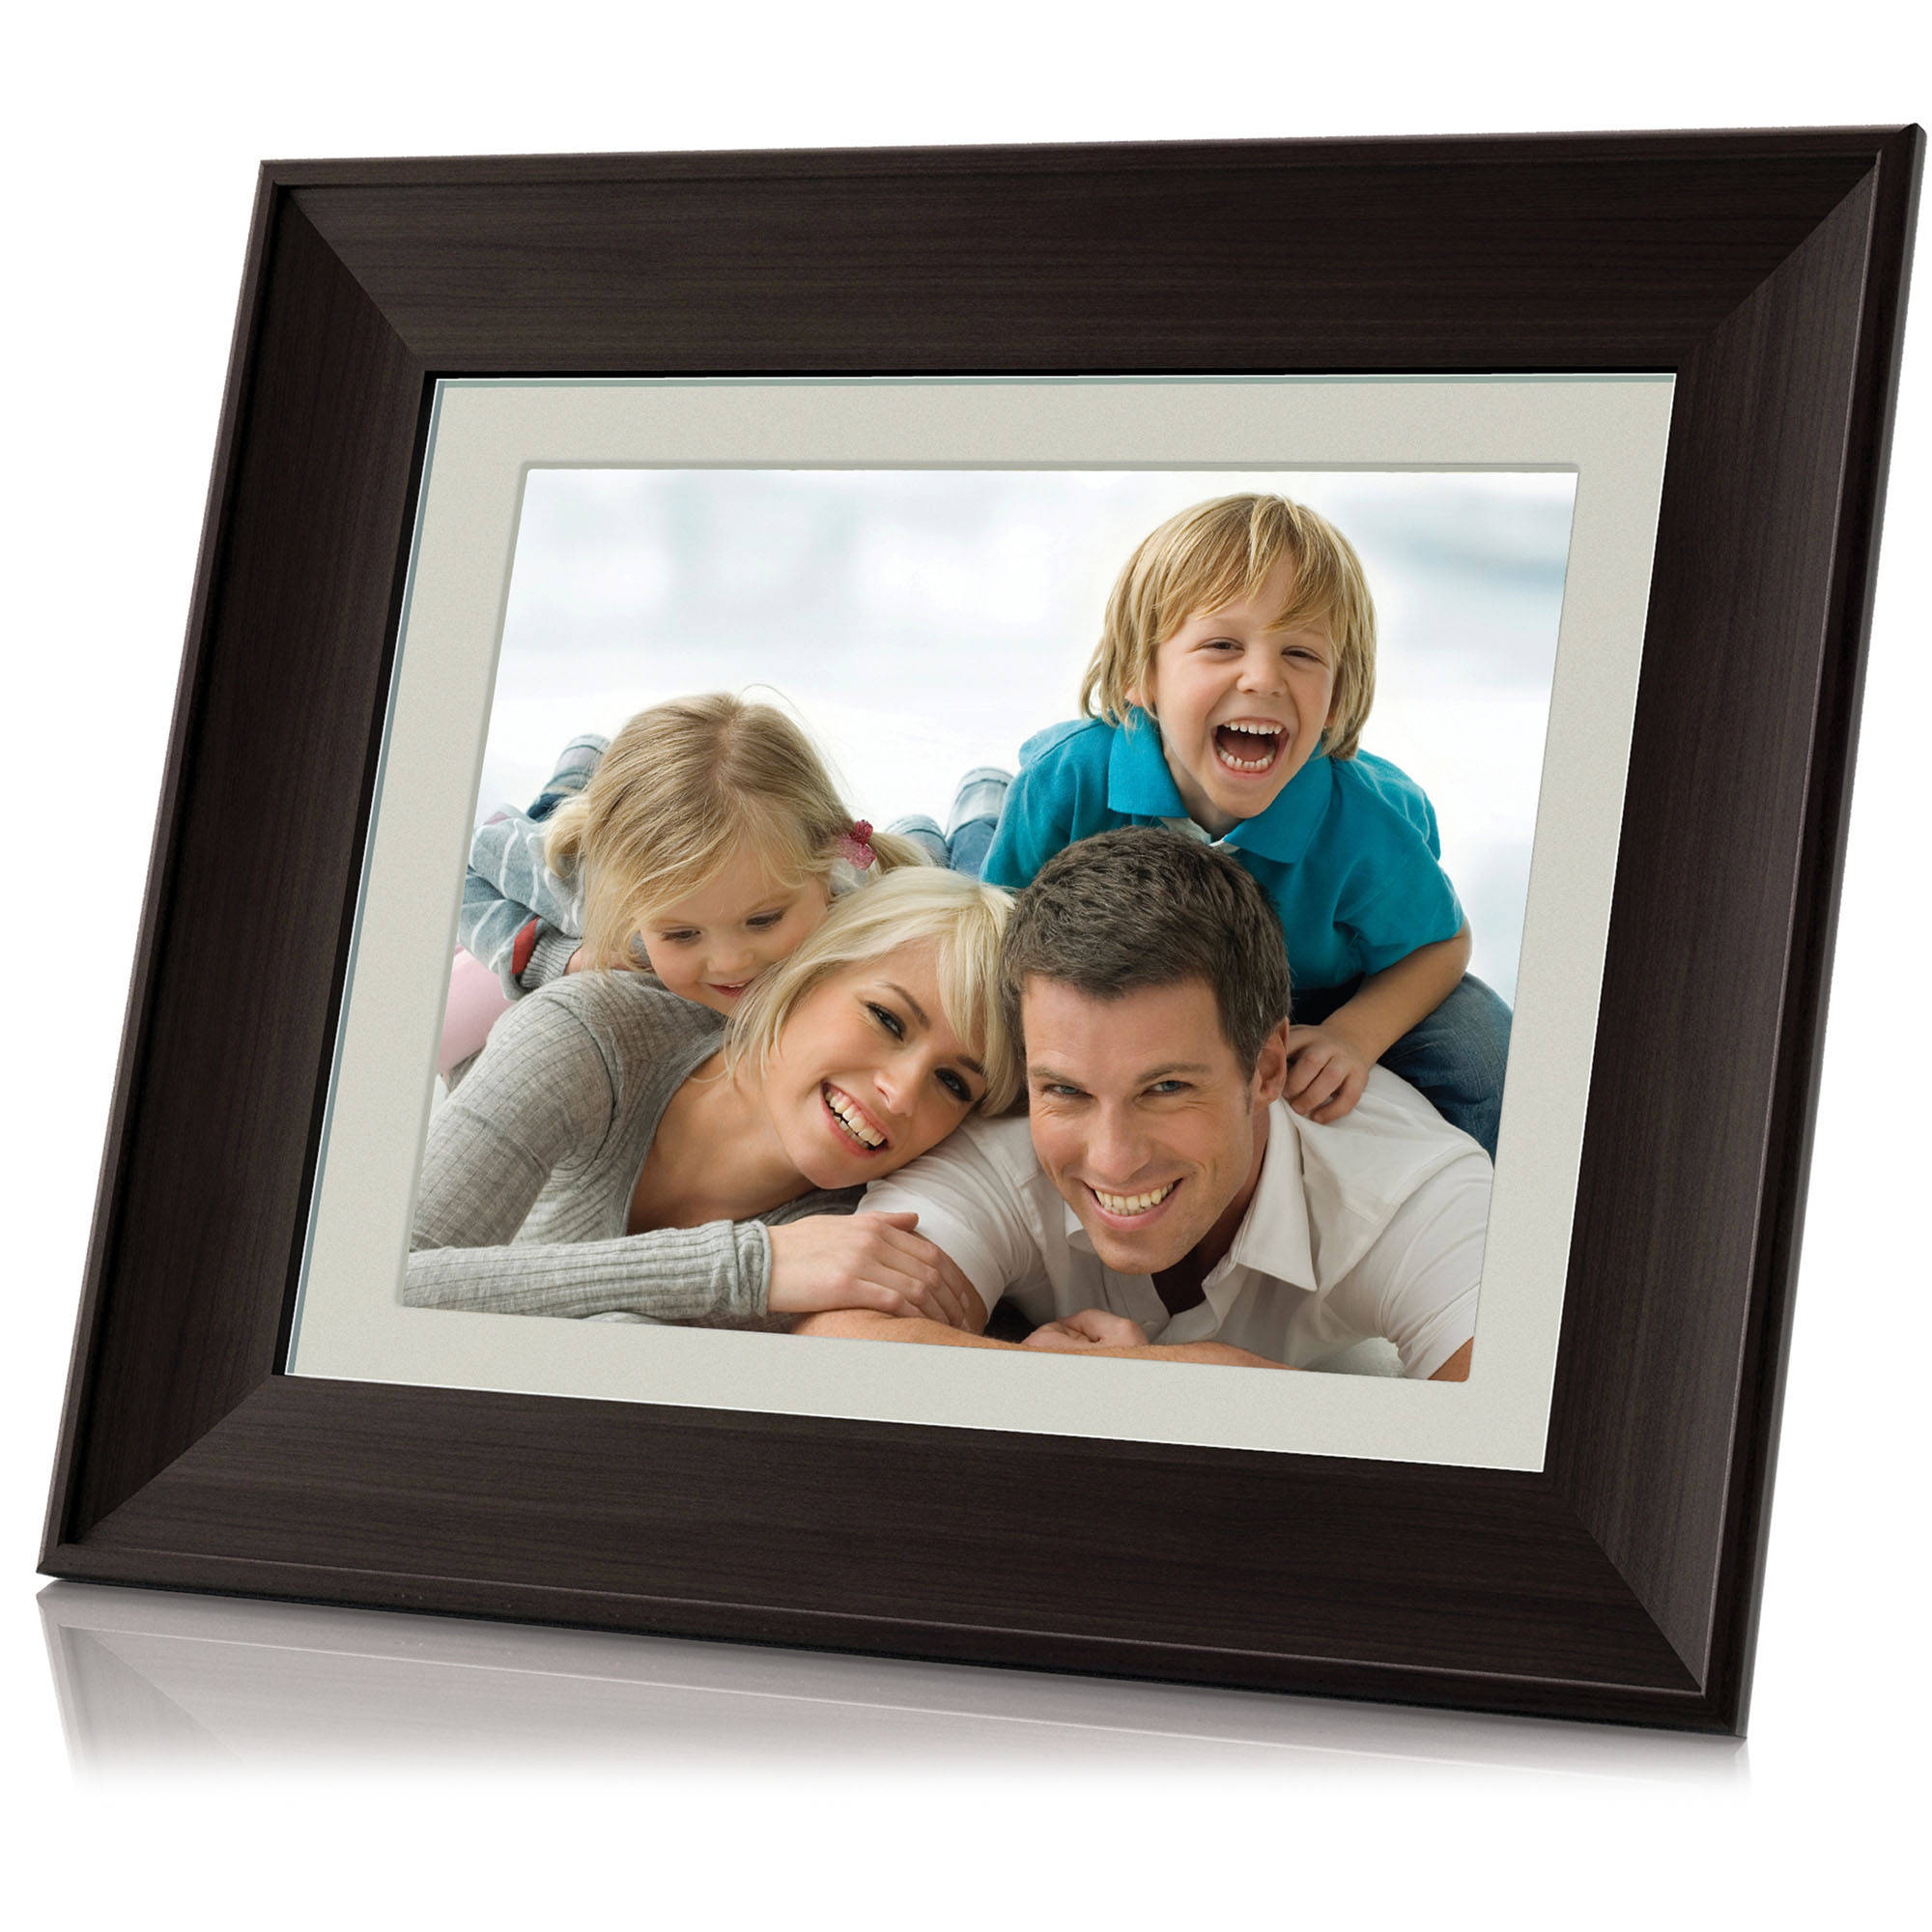 Coby dp1052 10 digital photo frame with multimedia dp1052 coby dp1052 10 digital photo frame with multimedia playback wooden jeuxipadfo Gallery